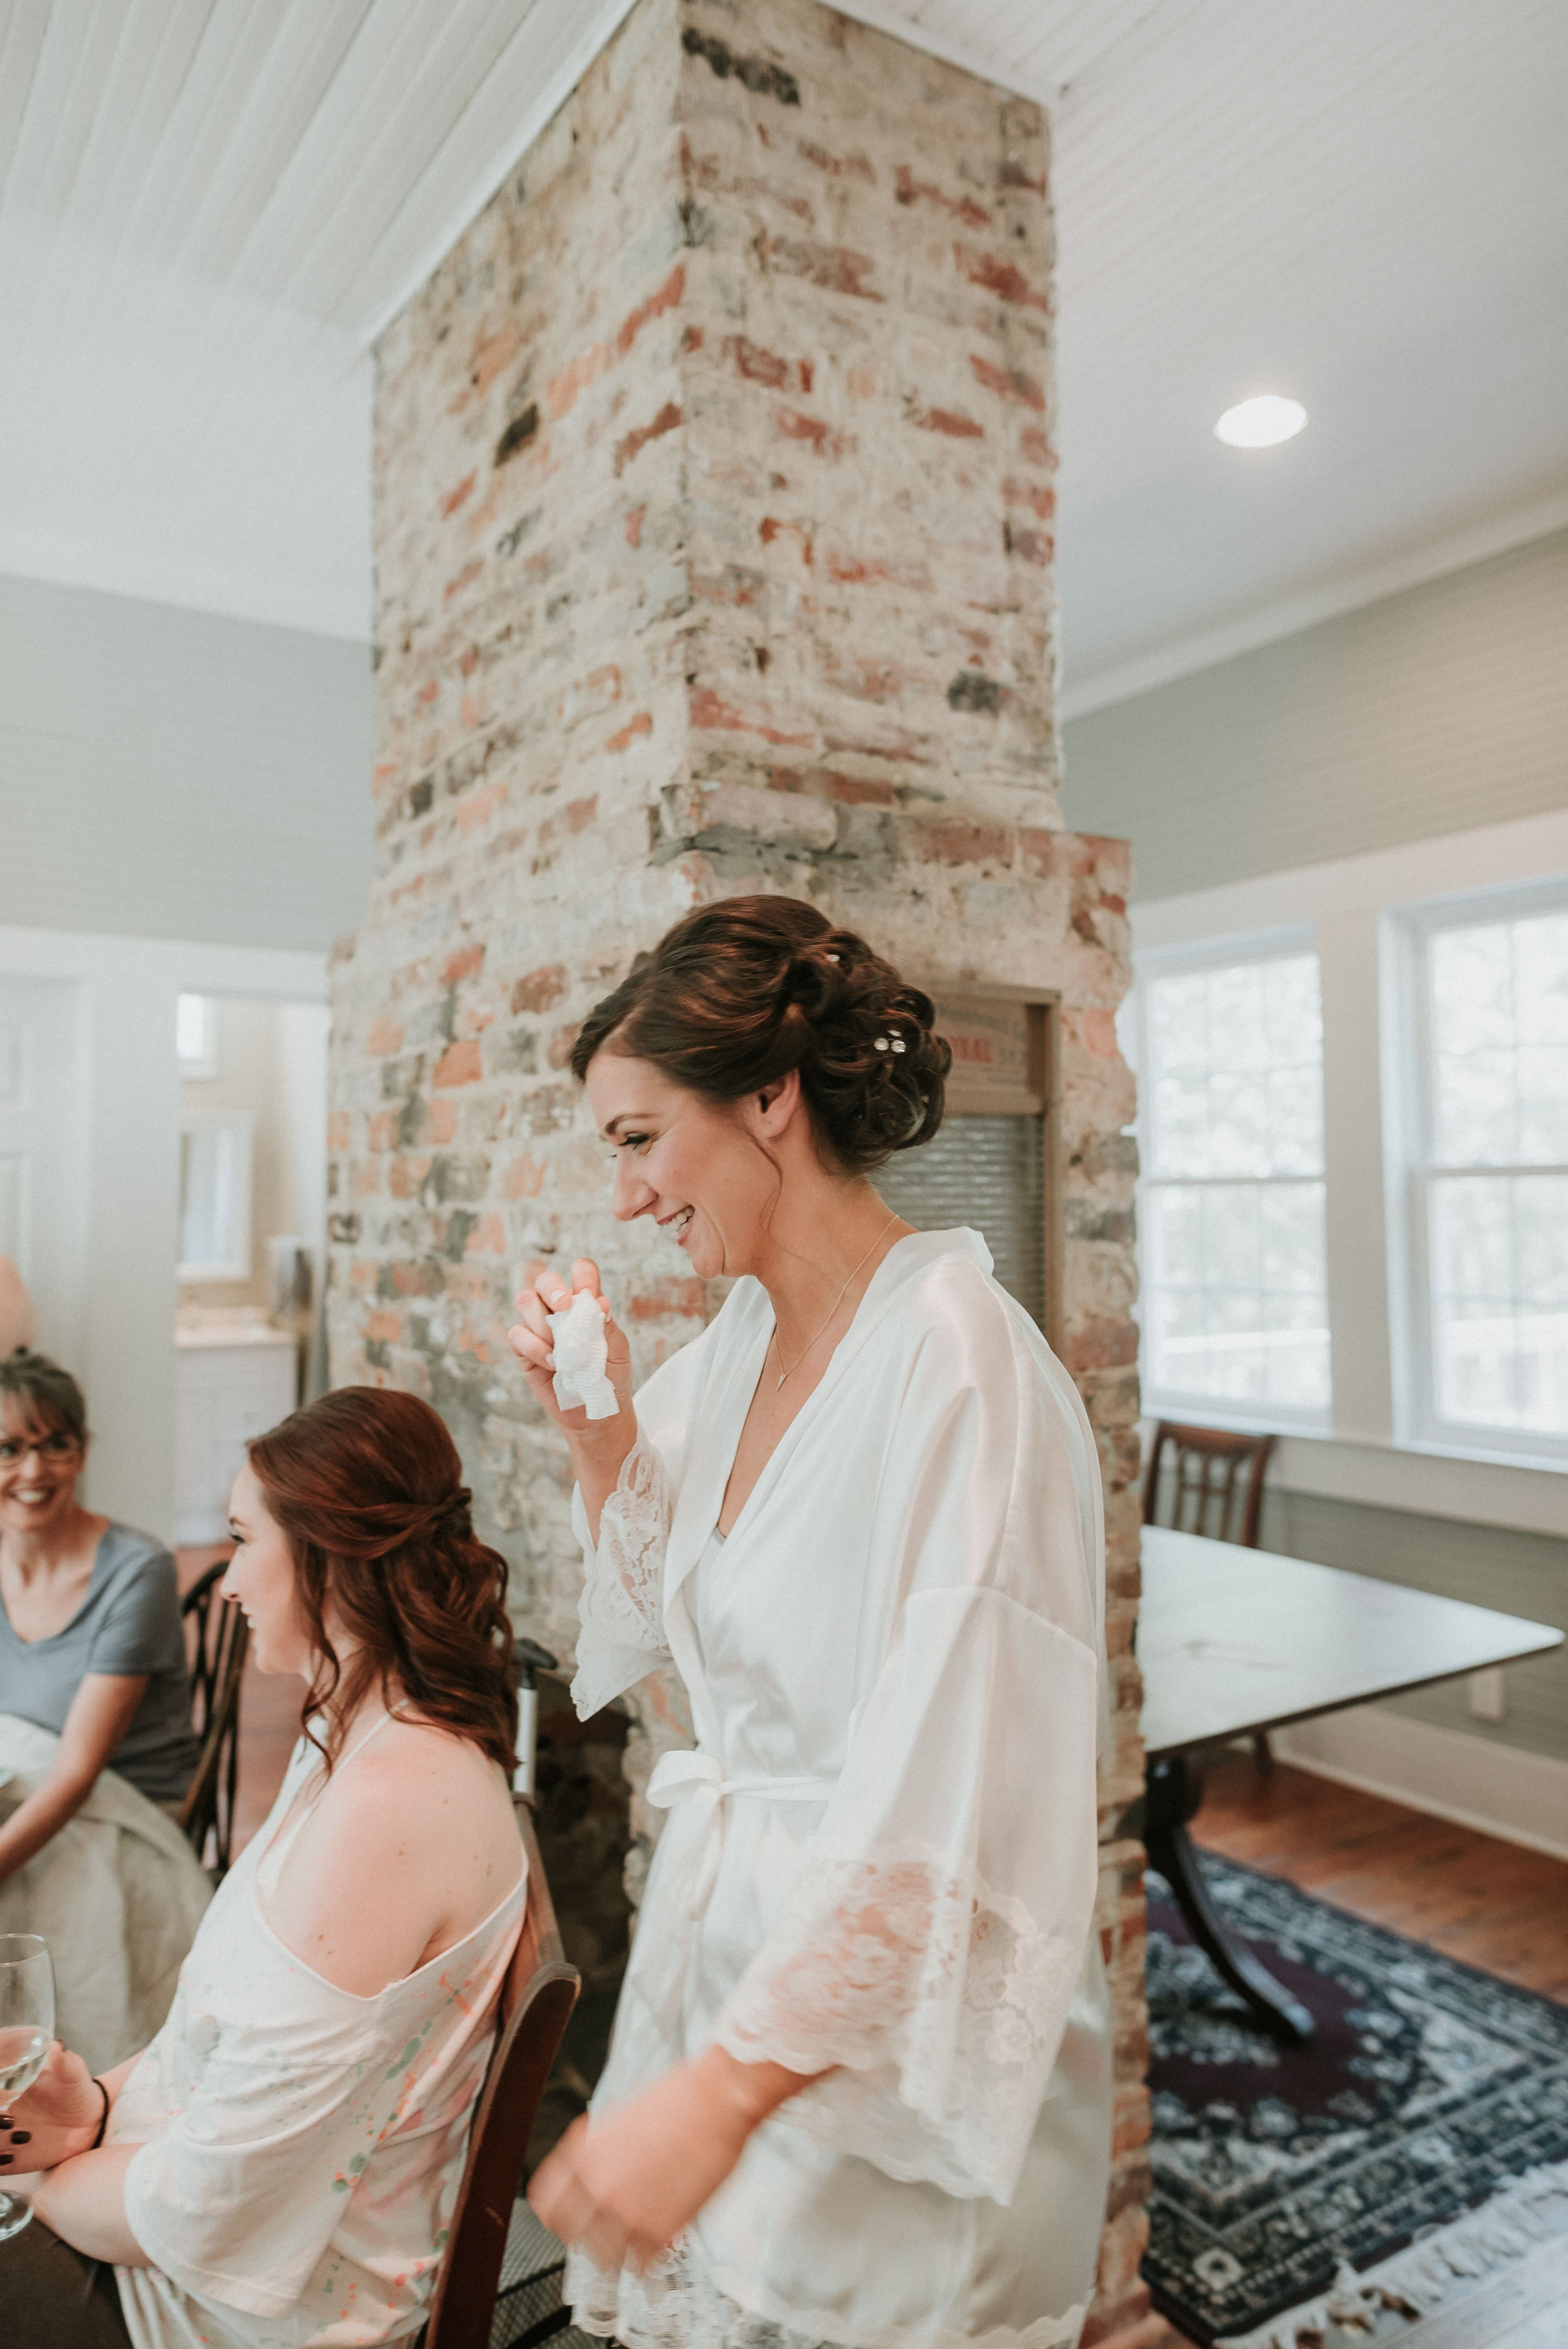 Bride and her bridesmaids share sweet moments together as Cali Stott Artistry puts the finishing touches on hair and makeup